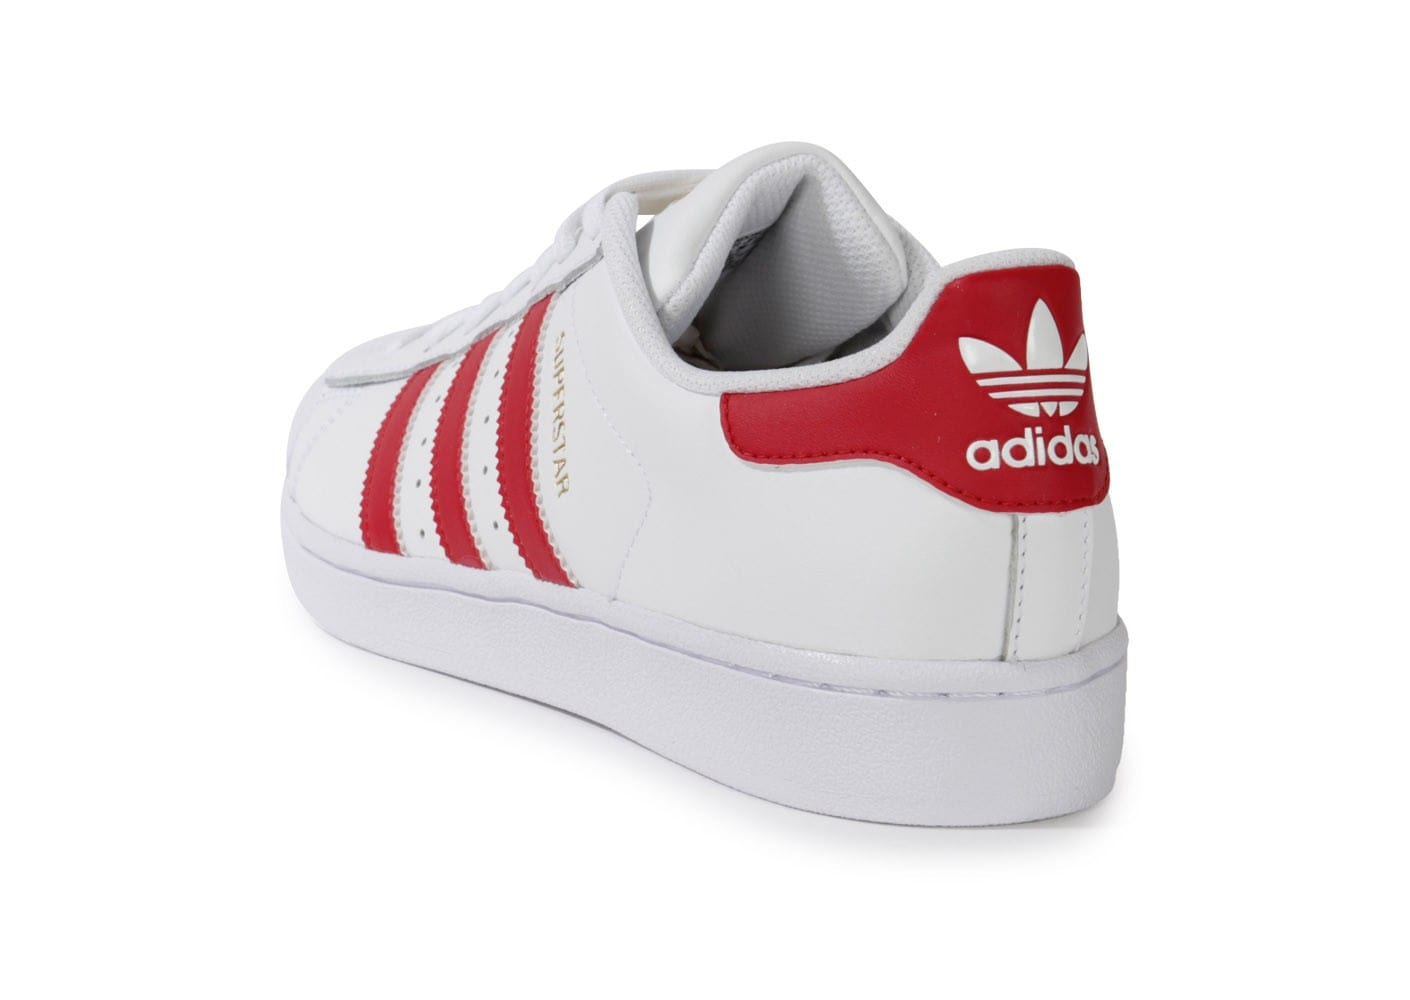 adidas superstar blanche et rouge chaussures baskets. Black Bedroom Furniture Sets. Home Design Ideas